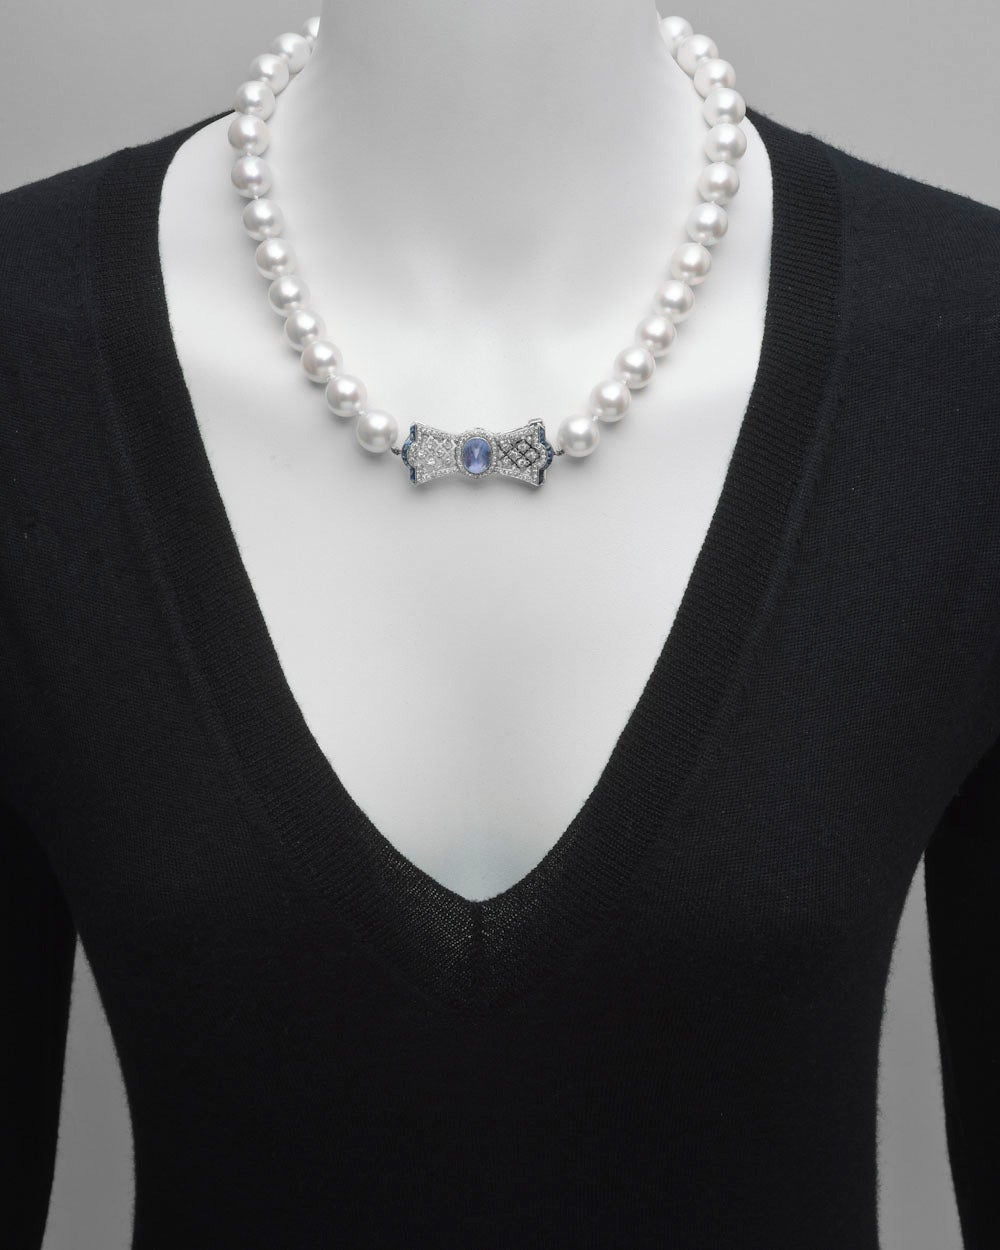 South Sea pearl necklace, showcasing fine cultured South Sea pearls with diameters ranging from 12.5mm to 12mm, strung on a hand-knotted silk cord, with a sapphire and diamond bow-shaped clasp in platinum, the clasp centering a cabochon-cut sapphire